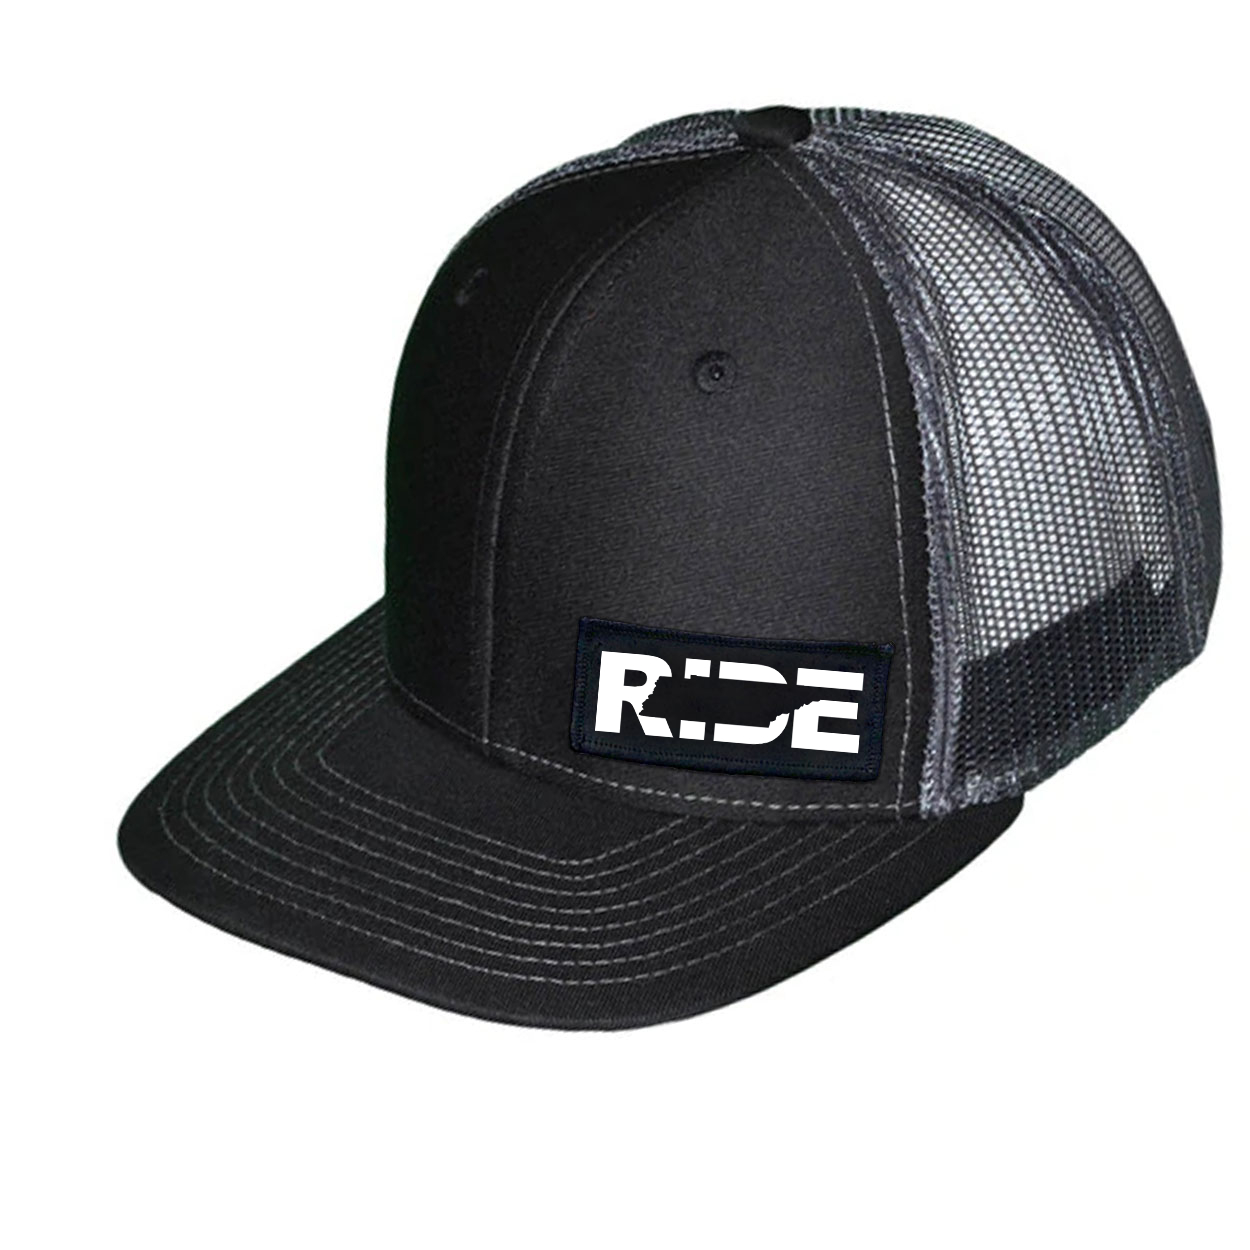 Ride Tennessee Night Out Woven Patch Snapback Trucker Hat Black/Dark Gray (White Logo)